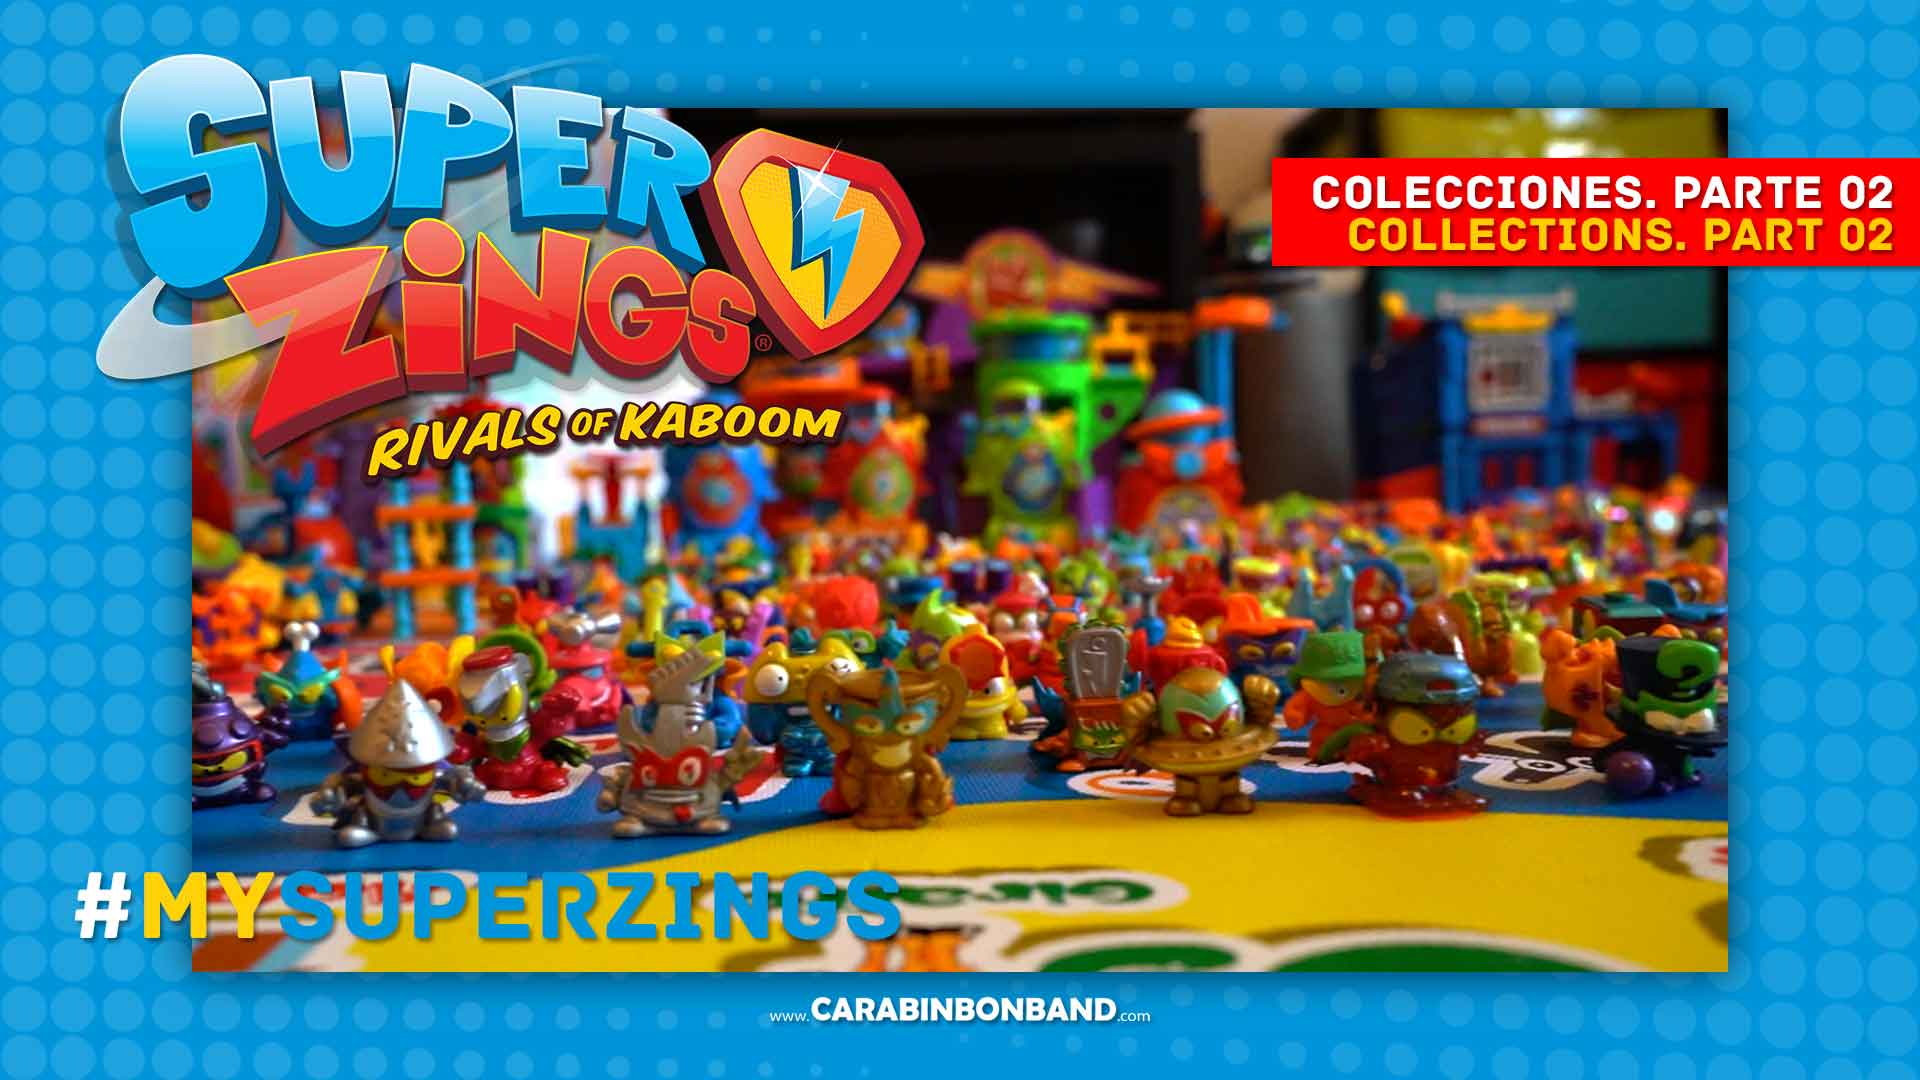 The #SUPERZINGS COLLECTIONS of our friends. Part 2